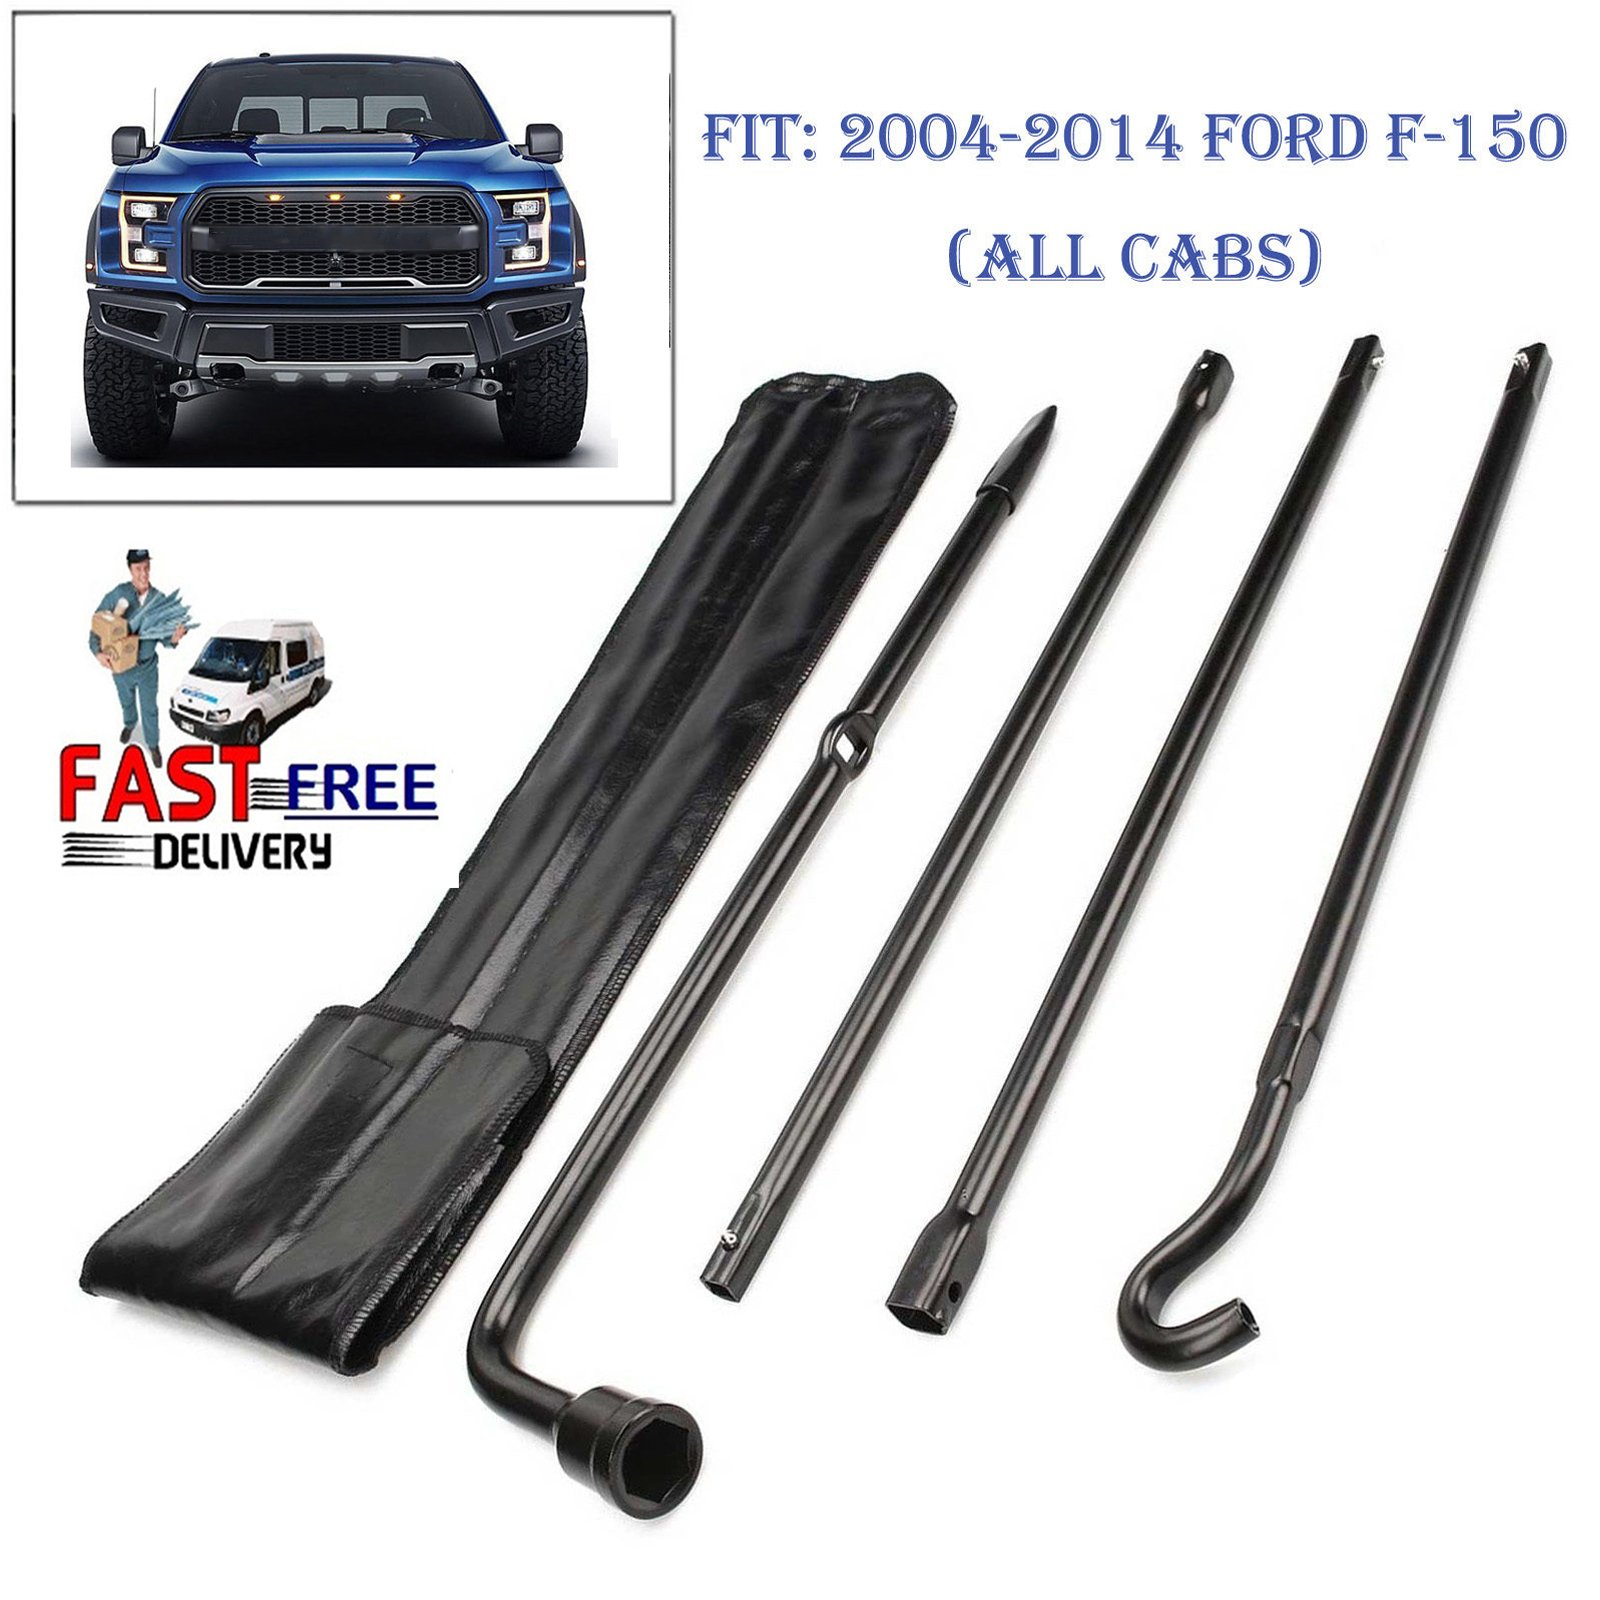 Spare Tire Tool Kit with Case for Ford F150 2004-2014 - 4 Piece Set Kit Lug Wrench Jack Hook Extension Black Steel Iron Replacements Wheel Changing Repair